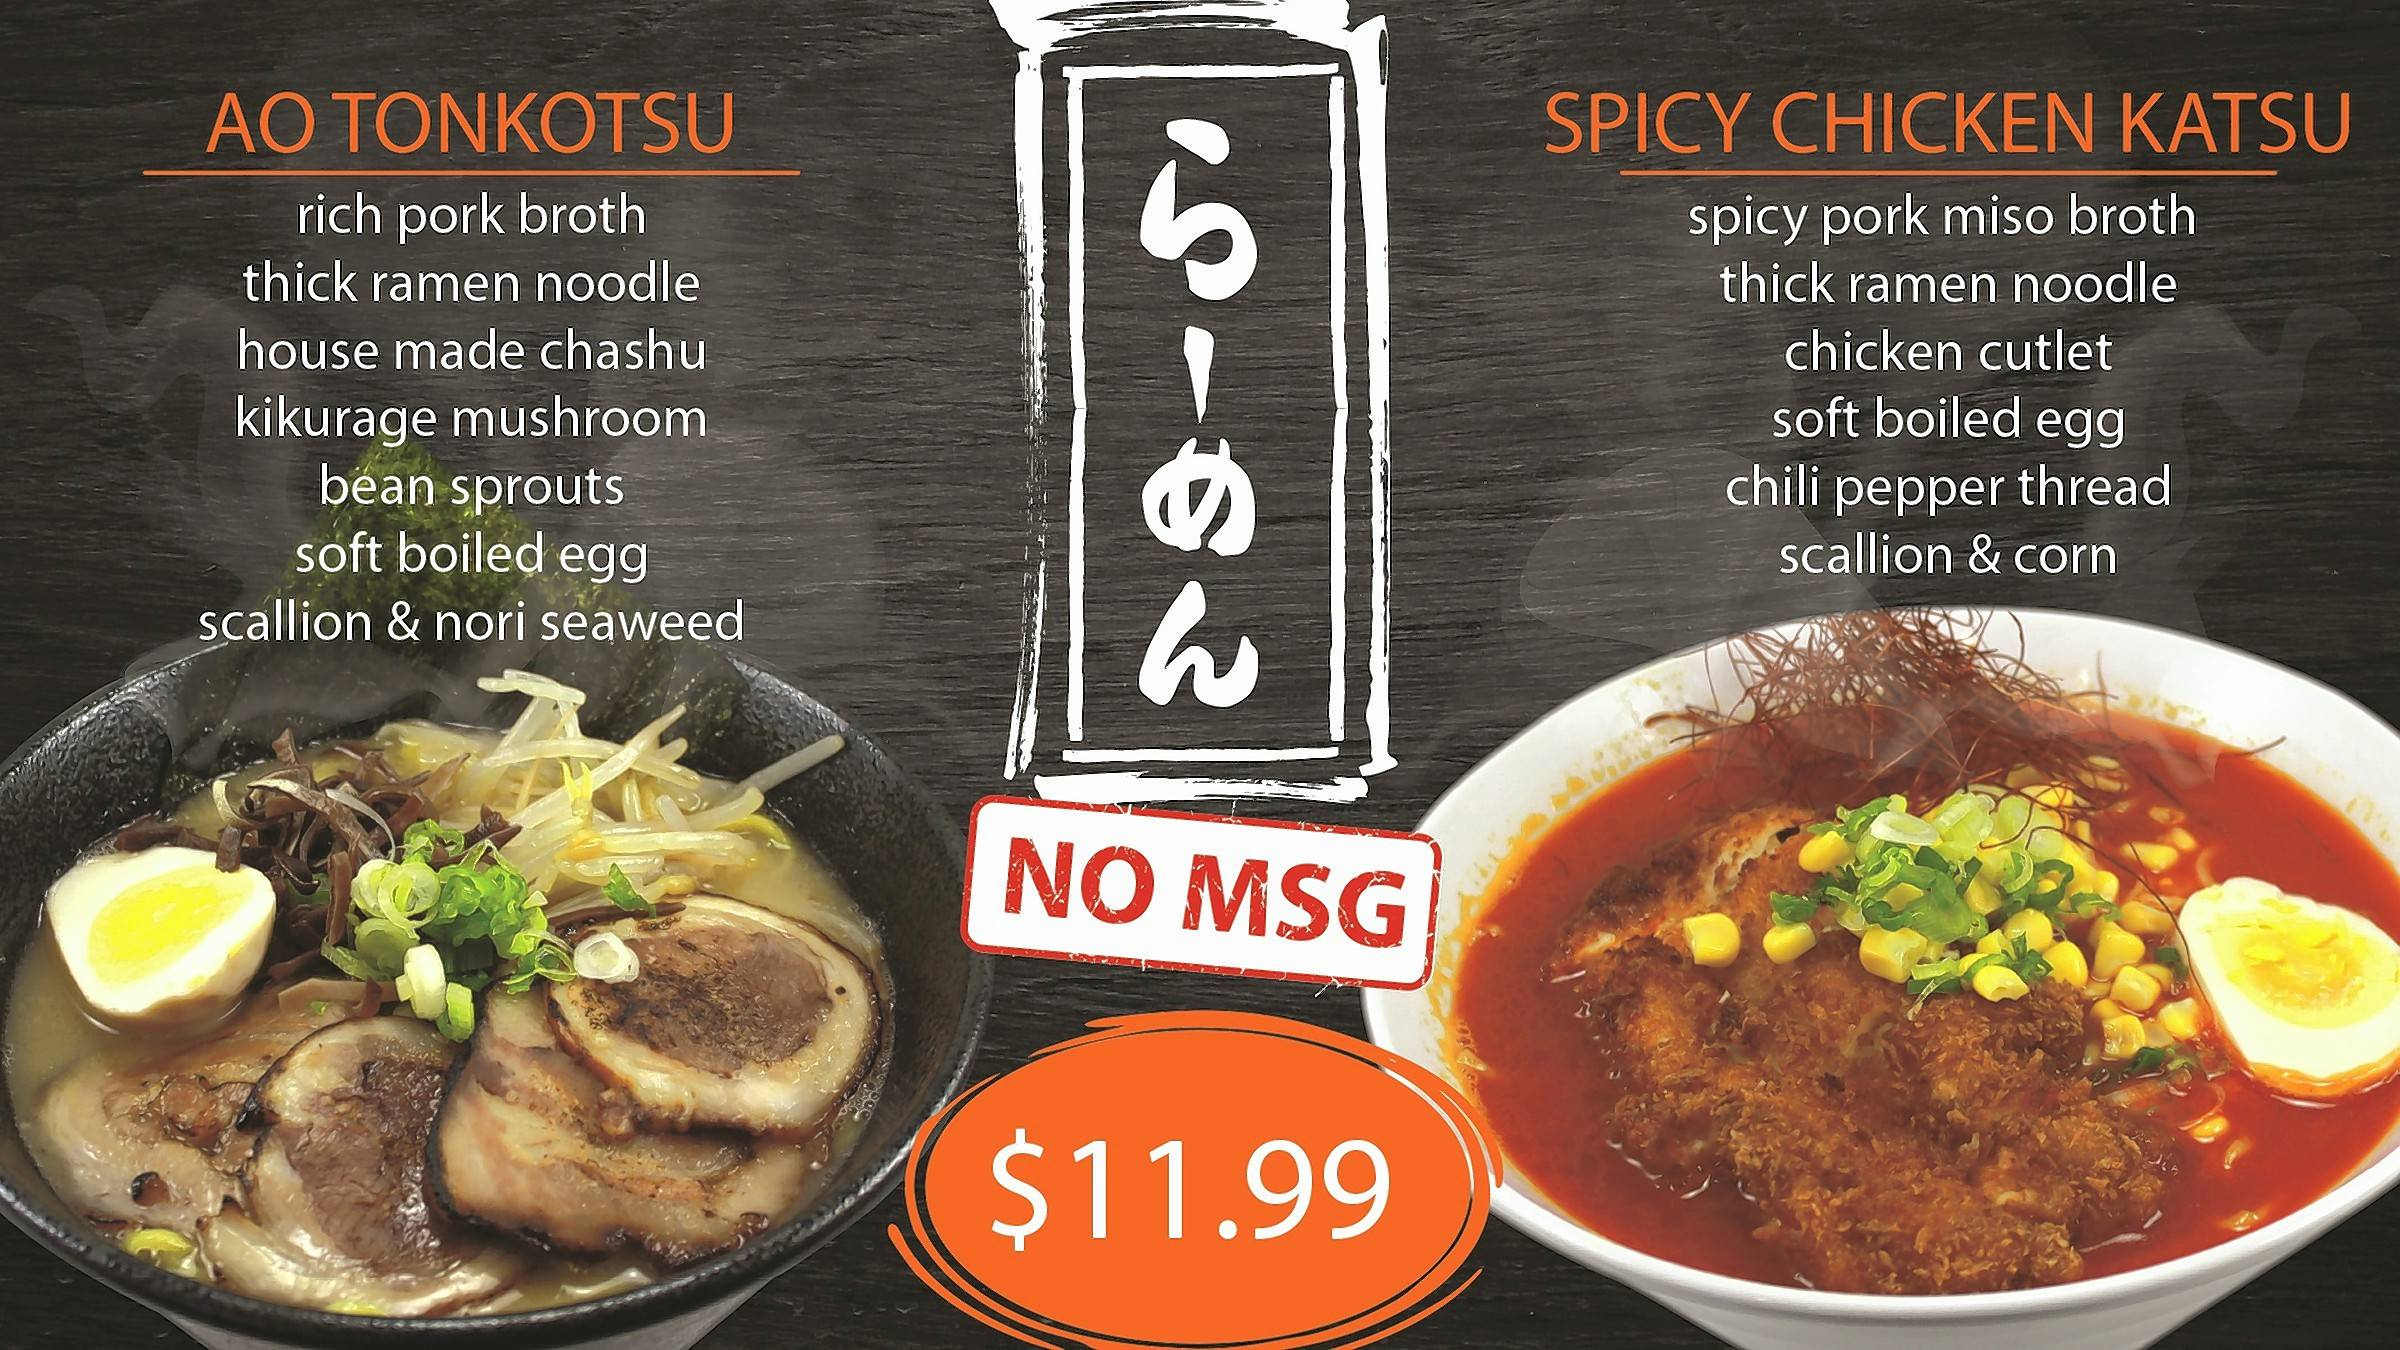 AO Sushi now offers ramen bowls like the spicy chicken katsu for $11.99.